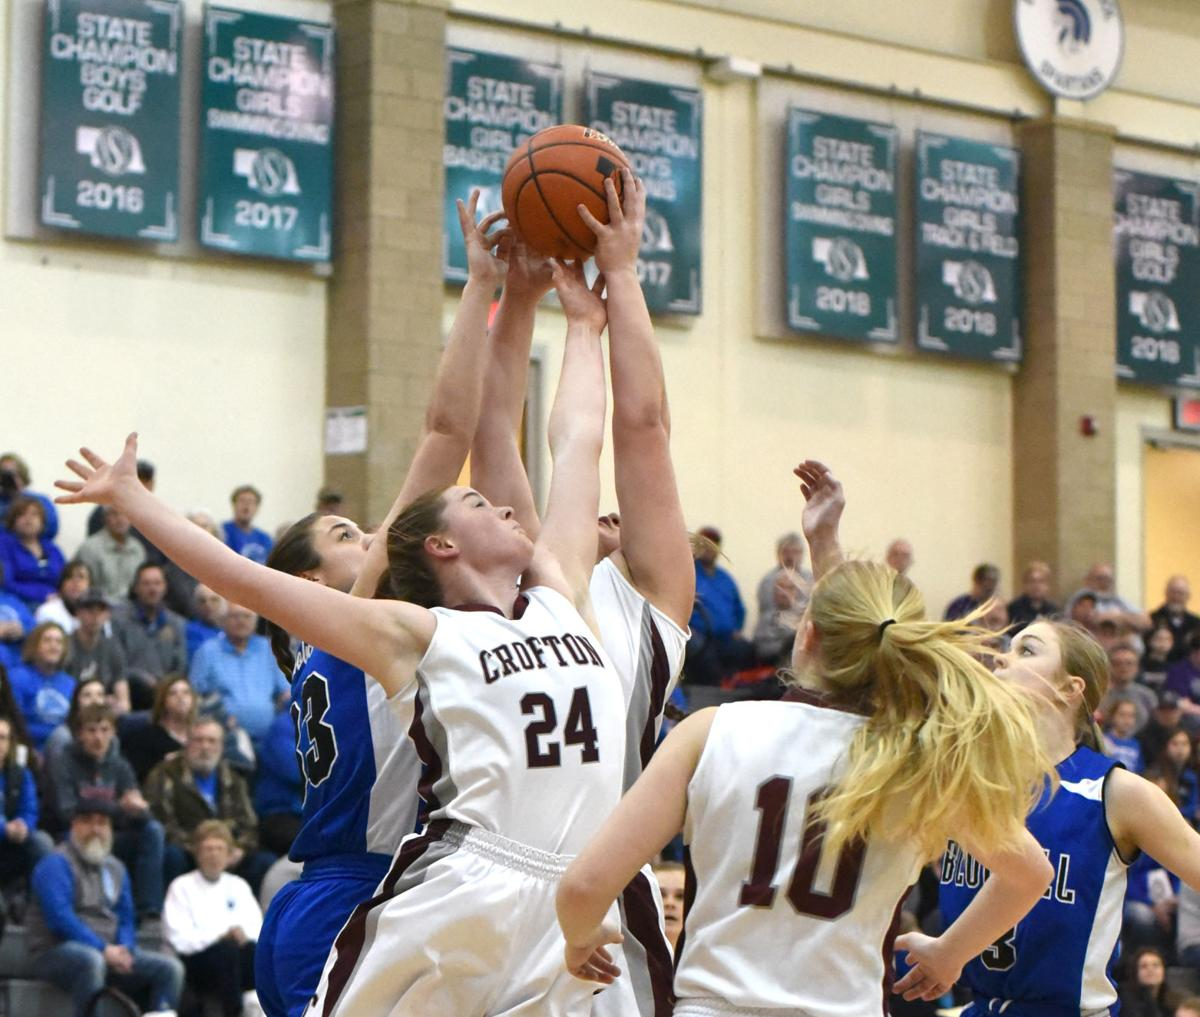 Girls Basketball State Playoffs Open For Handful Of: Crofton Girls Open State Girls' Basketball Tournament With